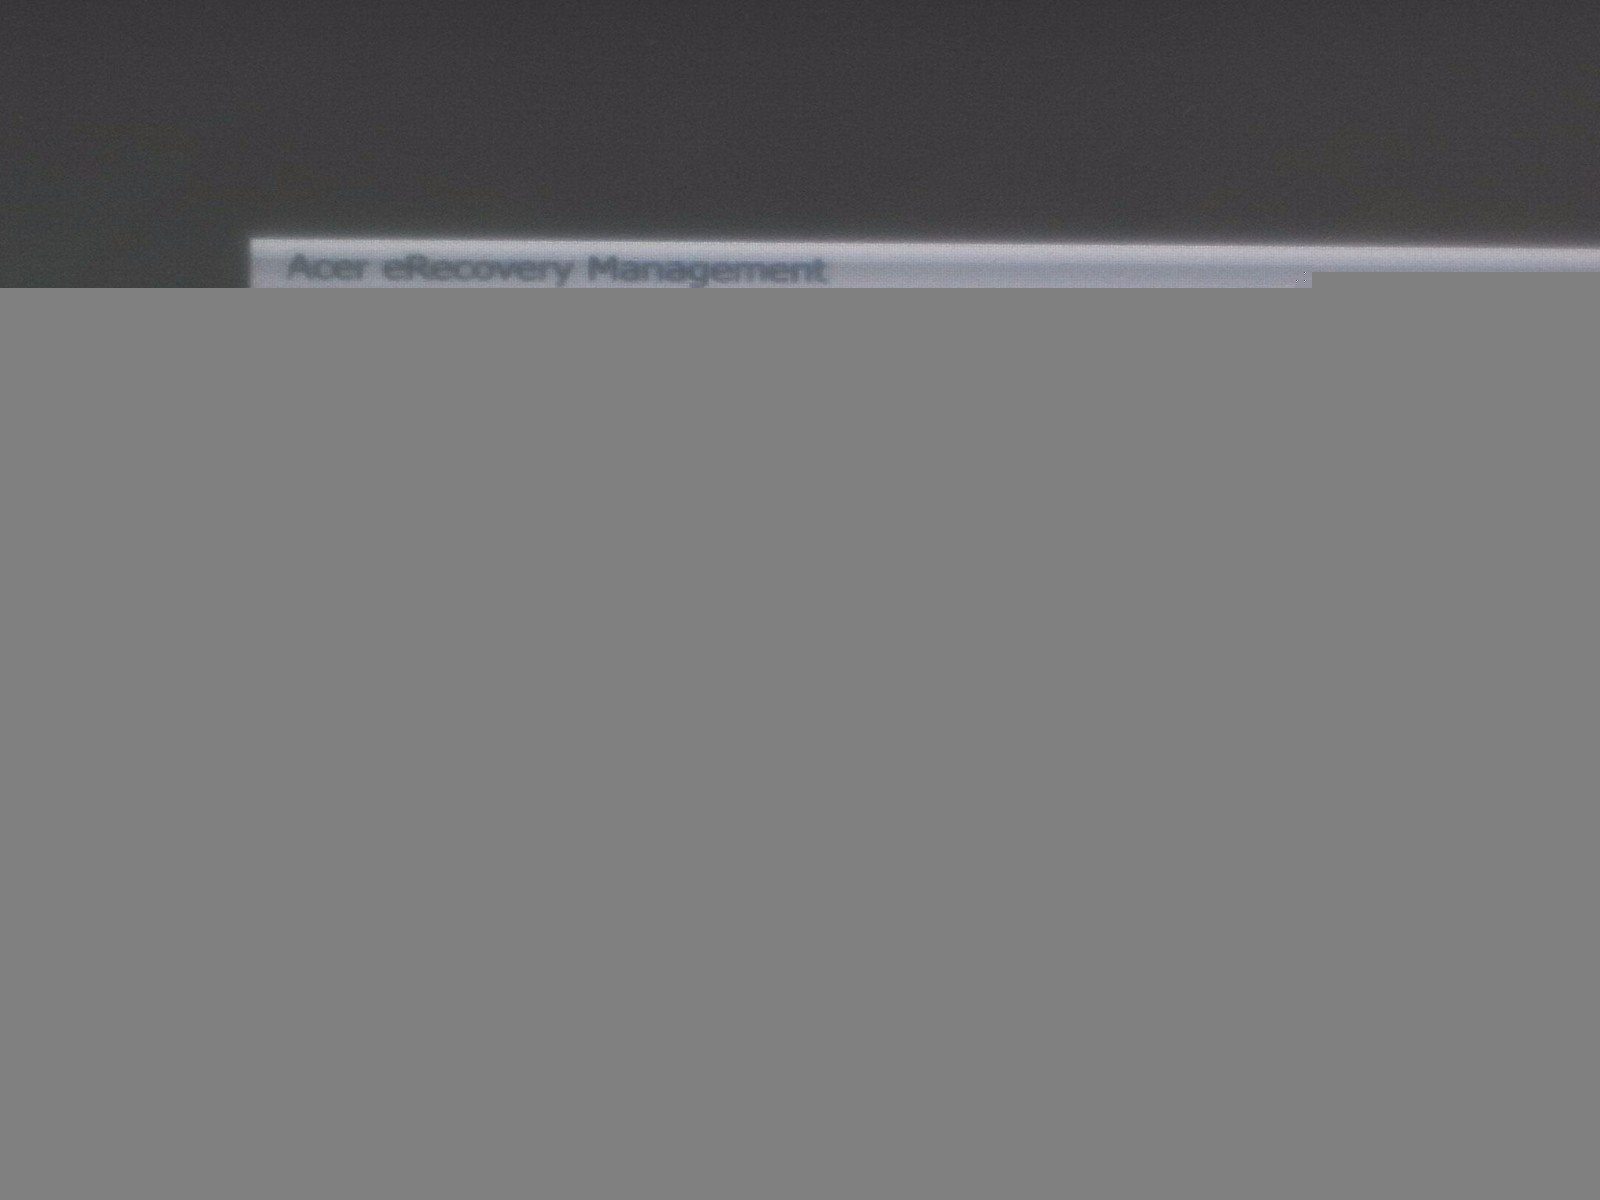 Partition Fail to Be Formatted